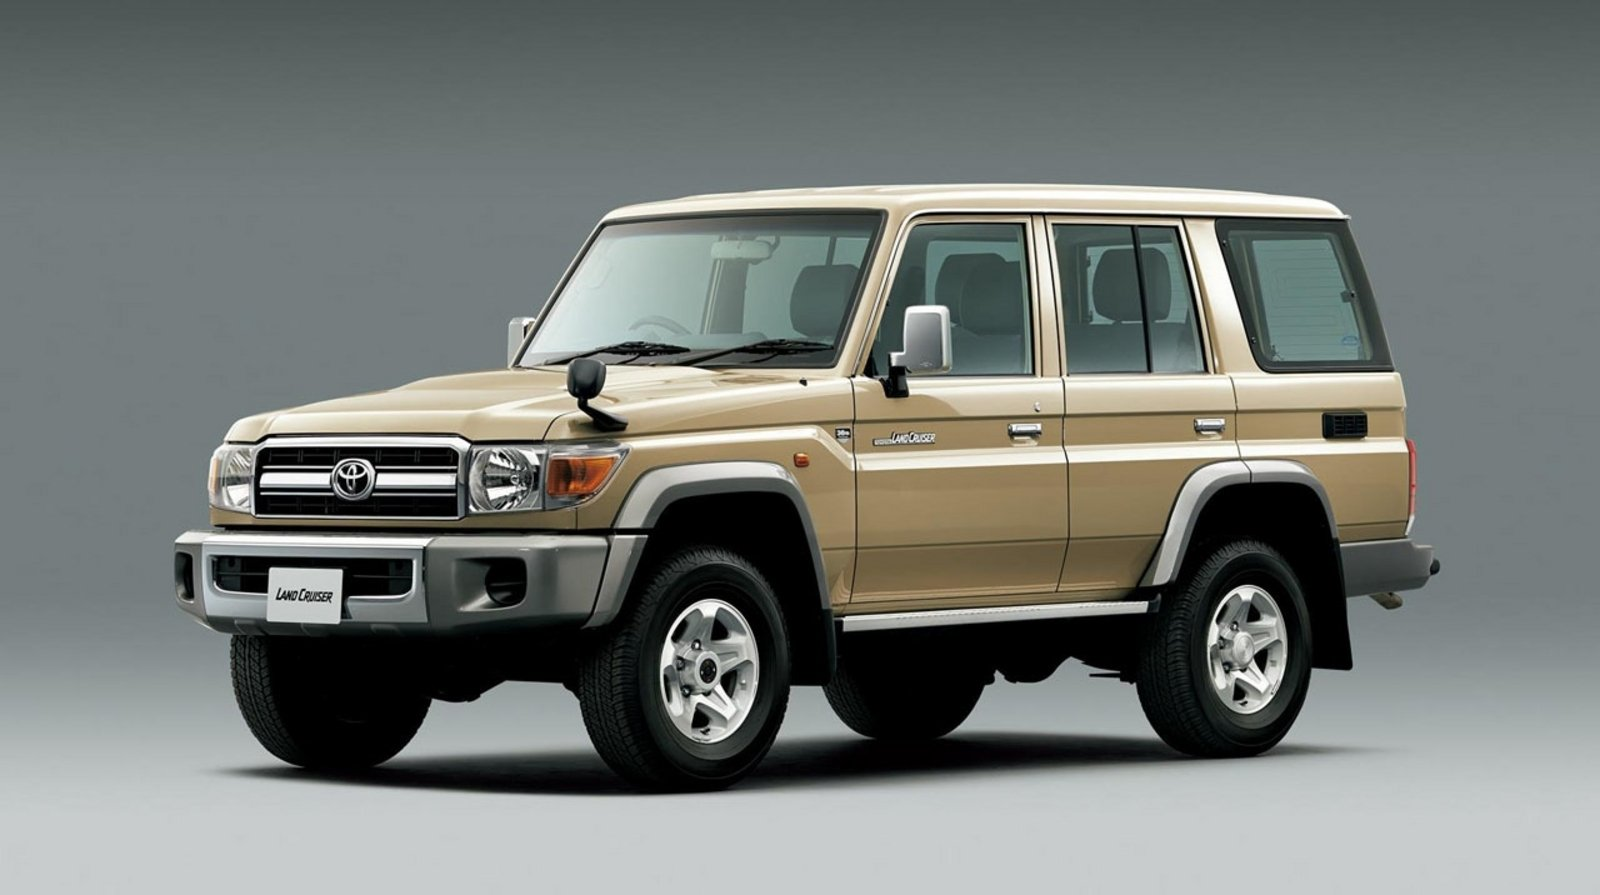 2014 Toyota Land Cruiser 70 Review